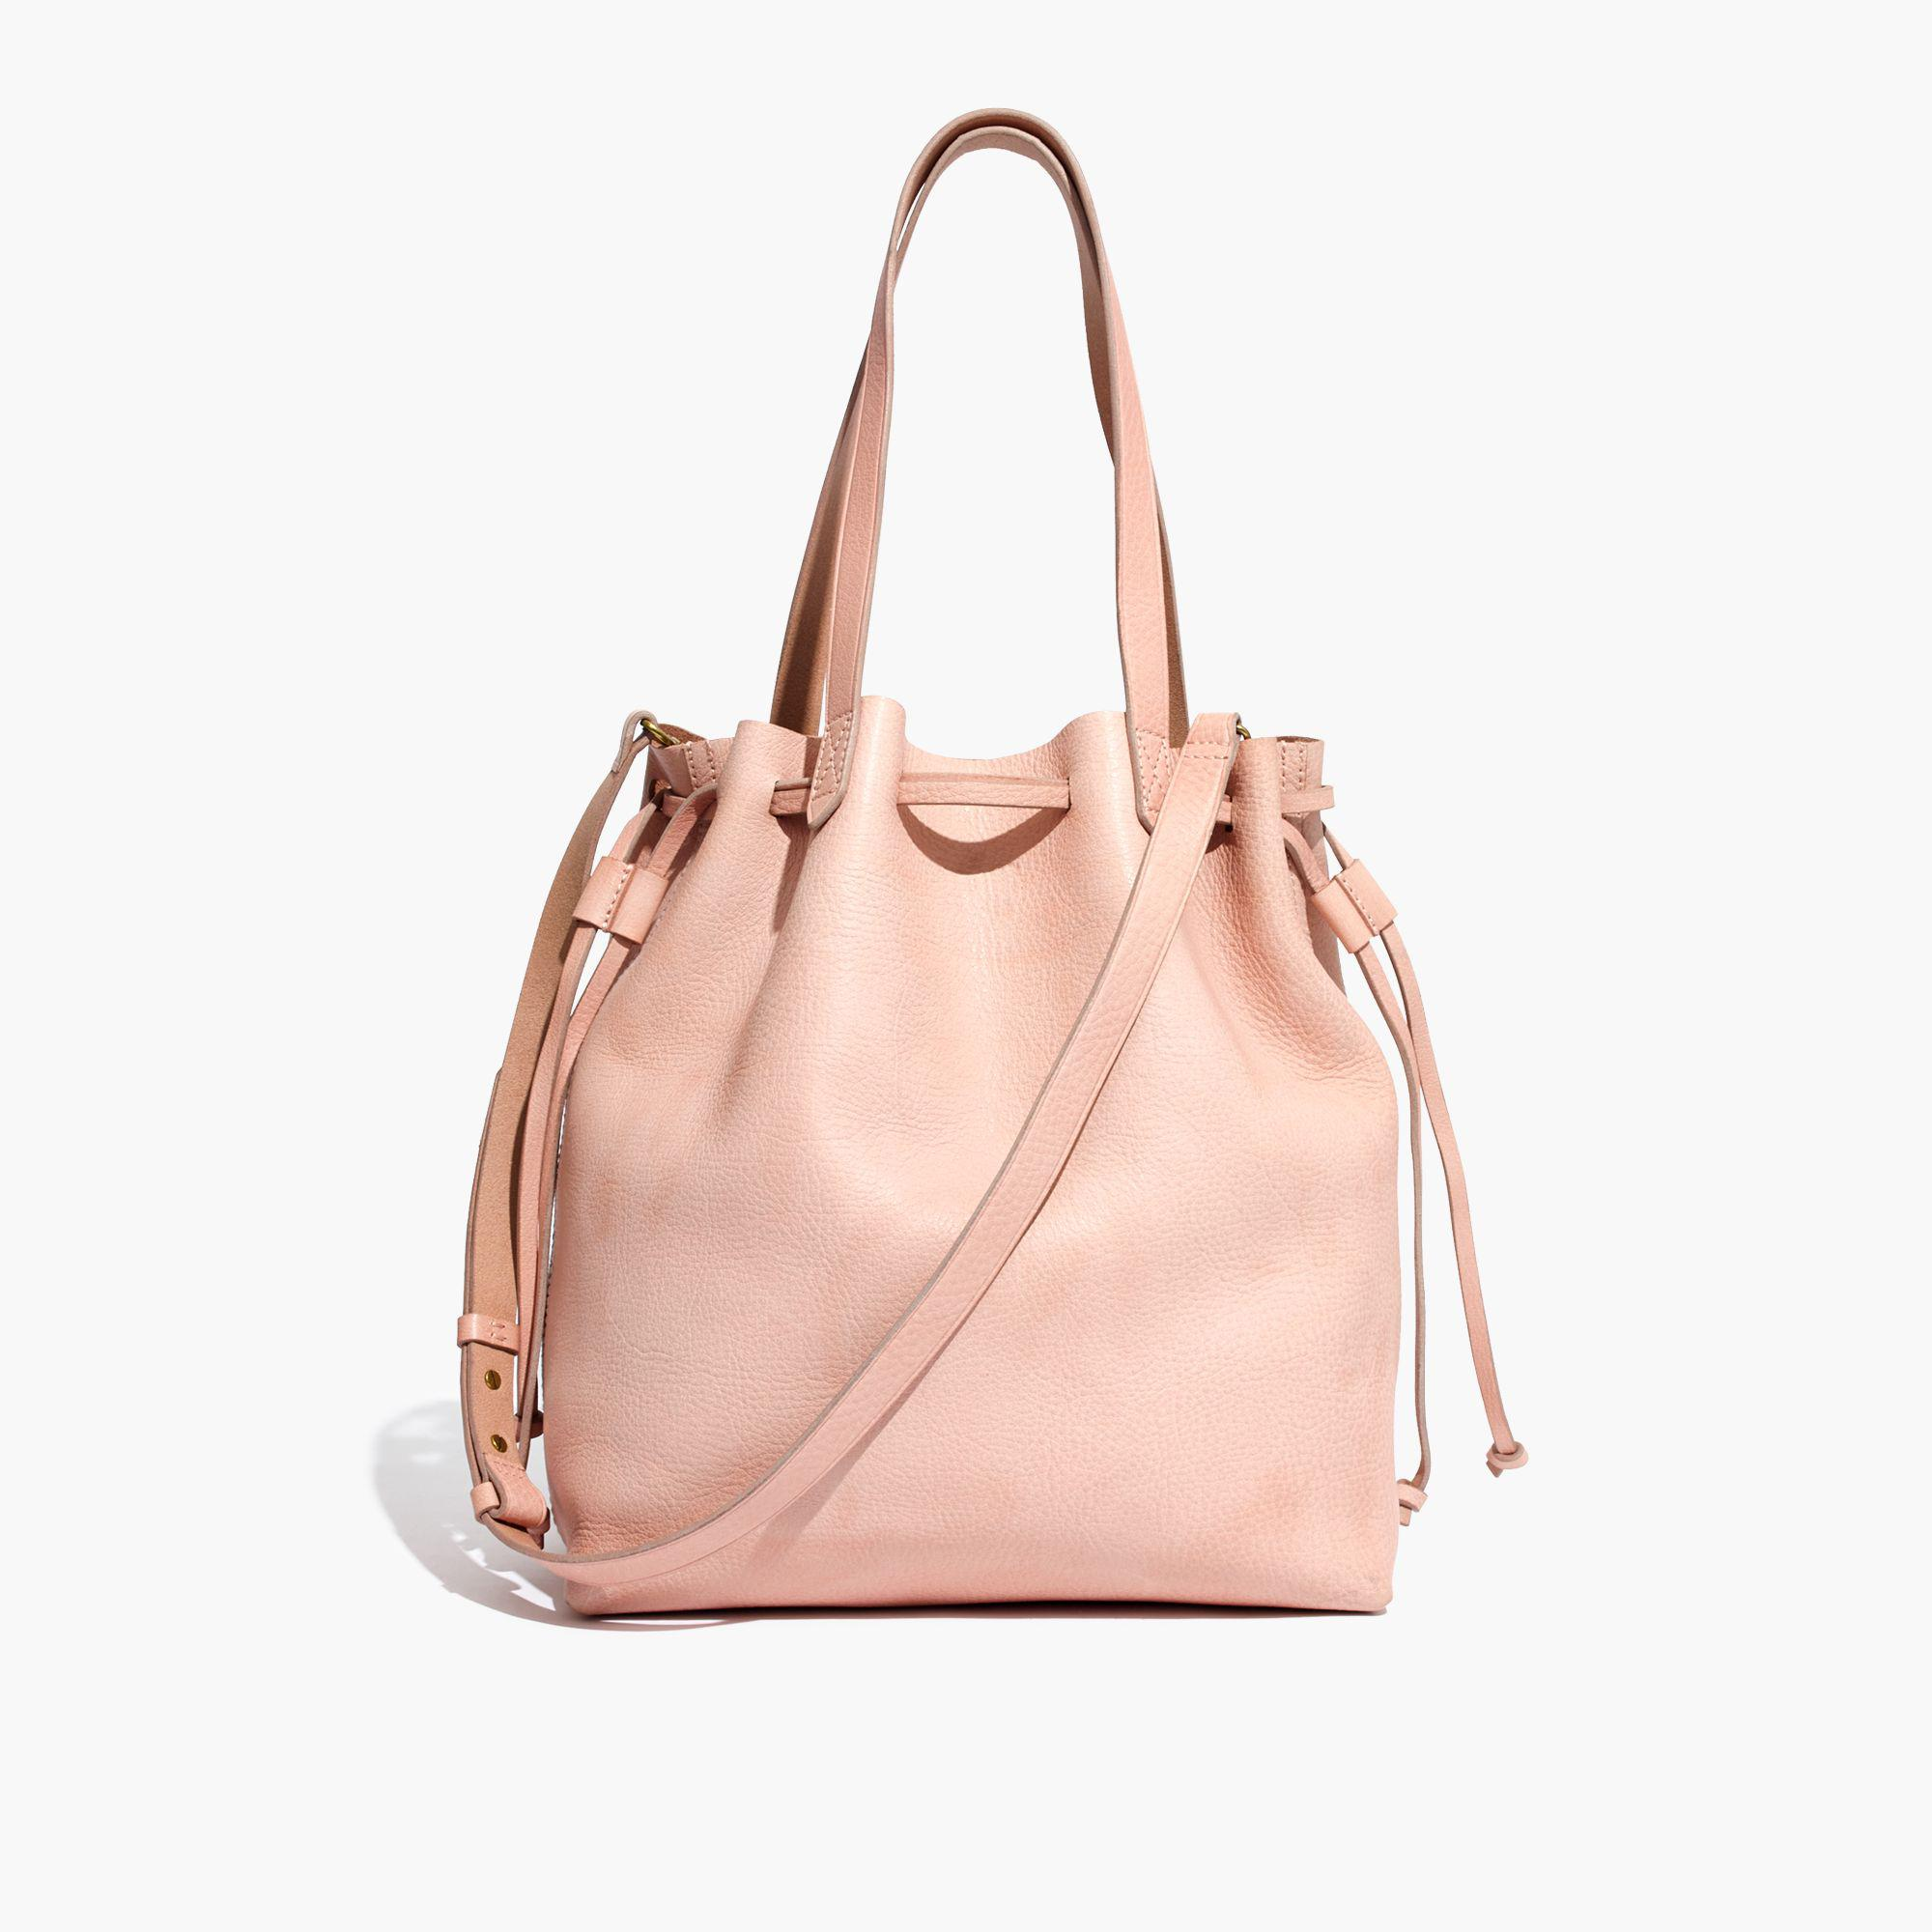 034ffbe1a617 Lyst - Madewell The Medium Drawstring Transport Tote in Pink